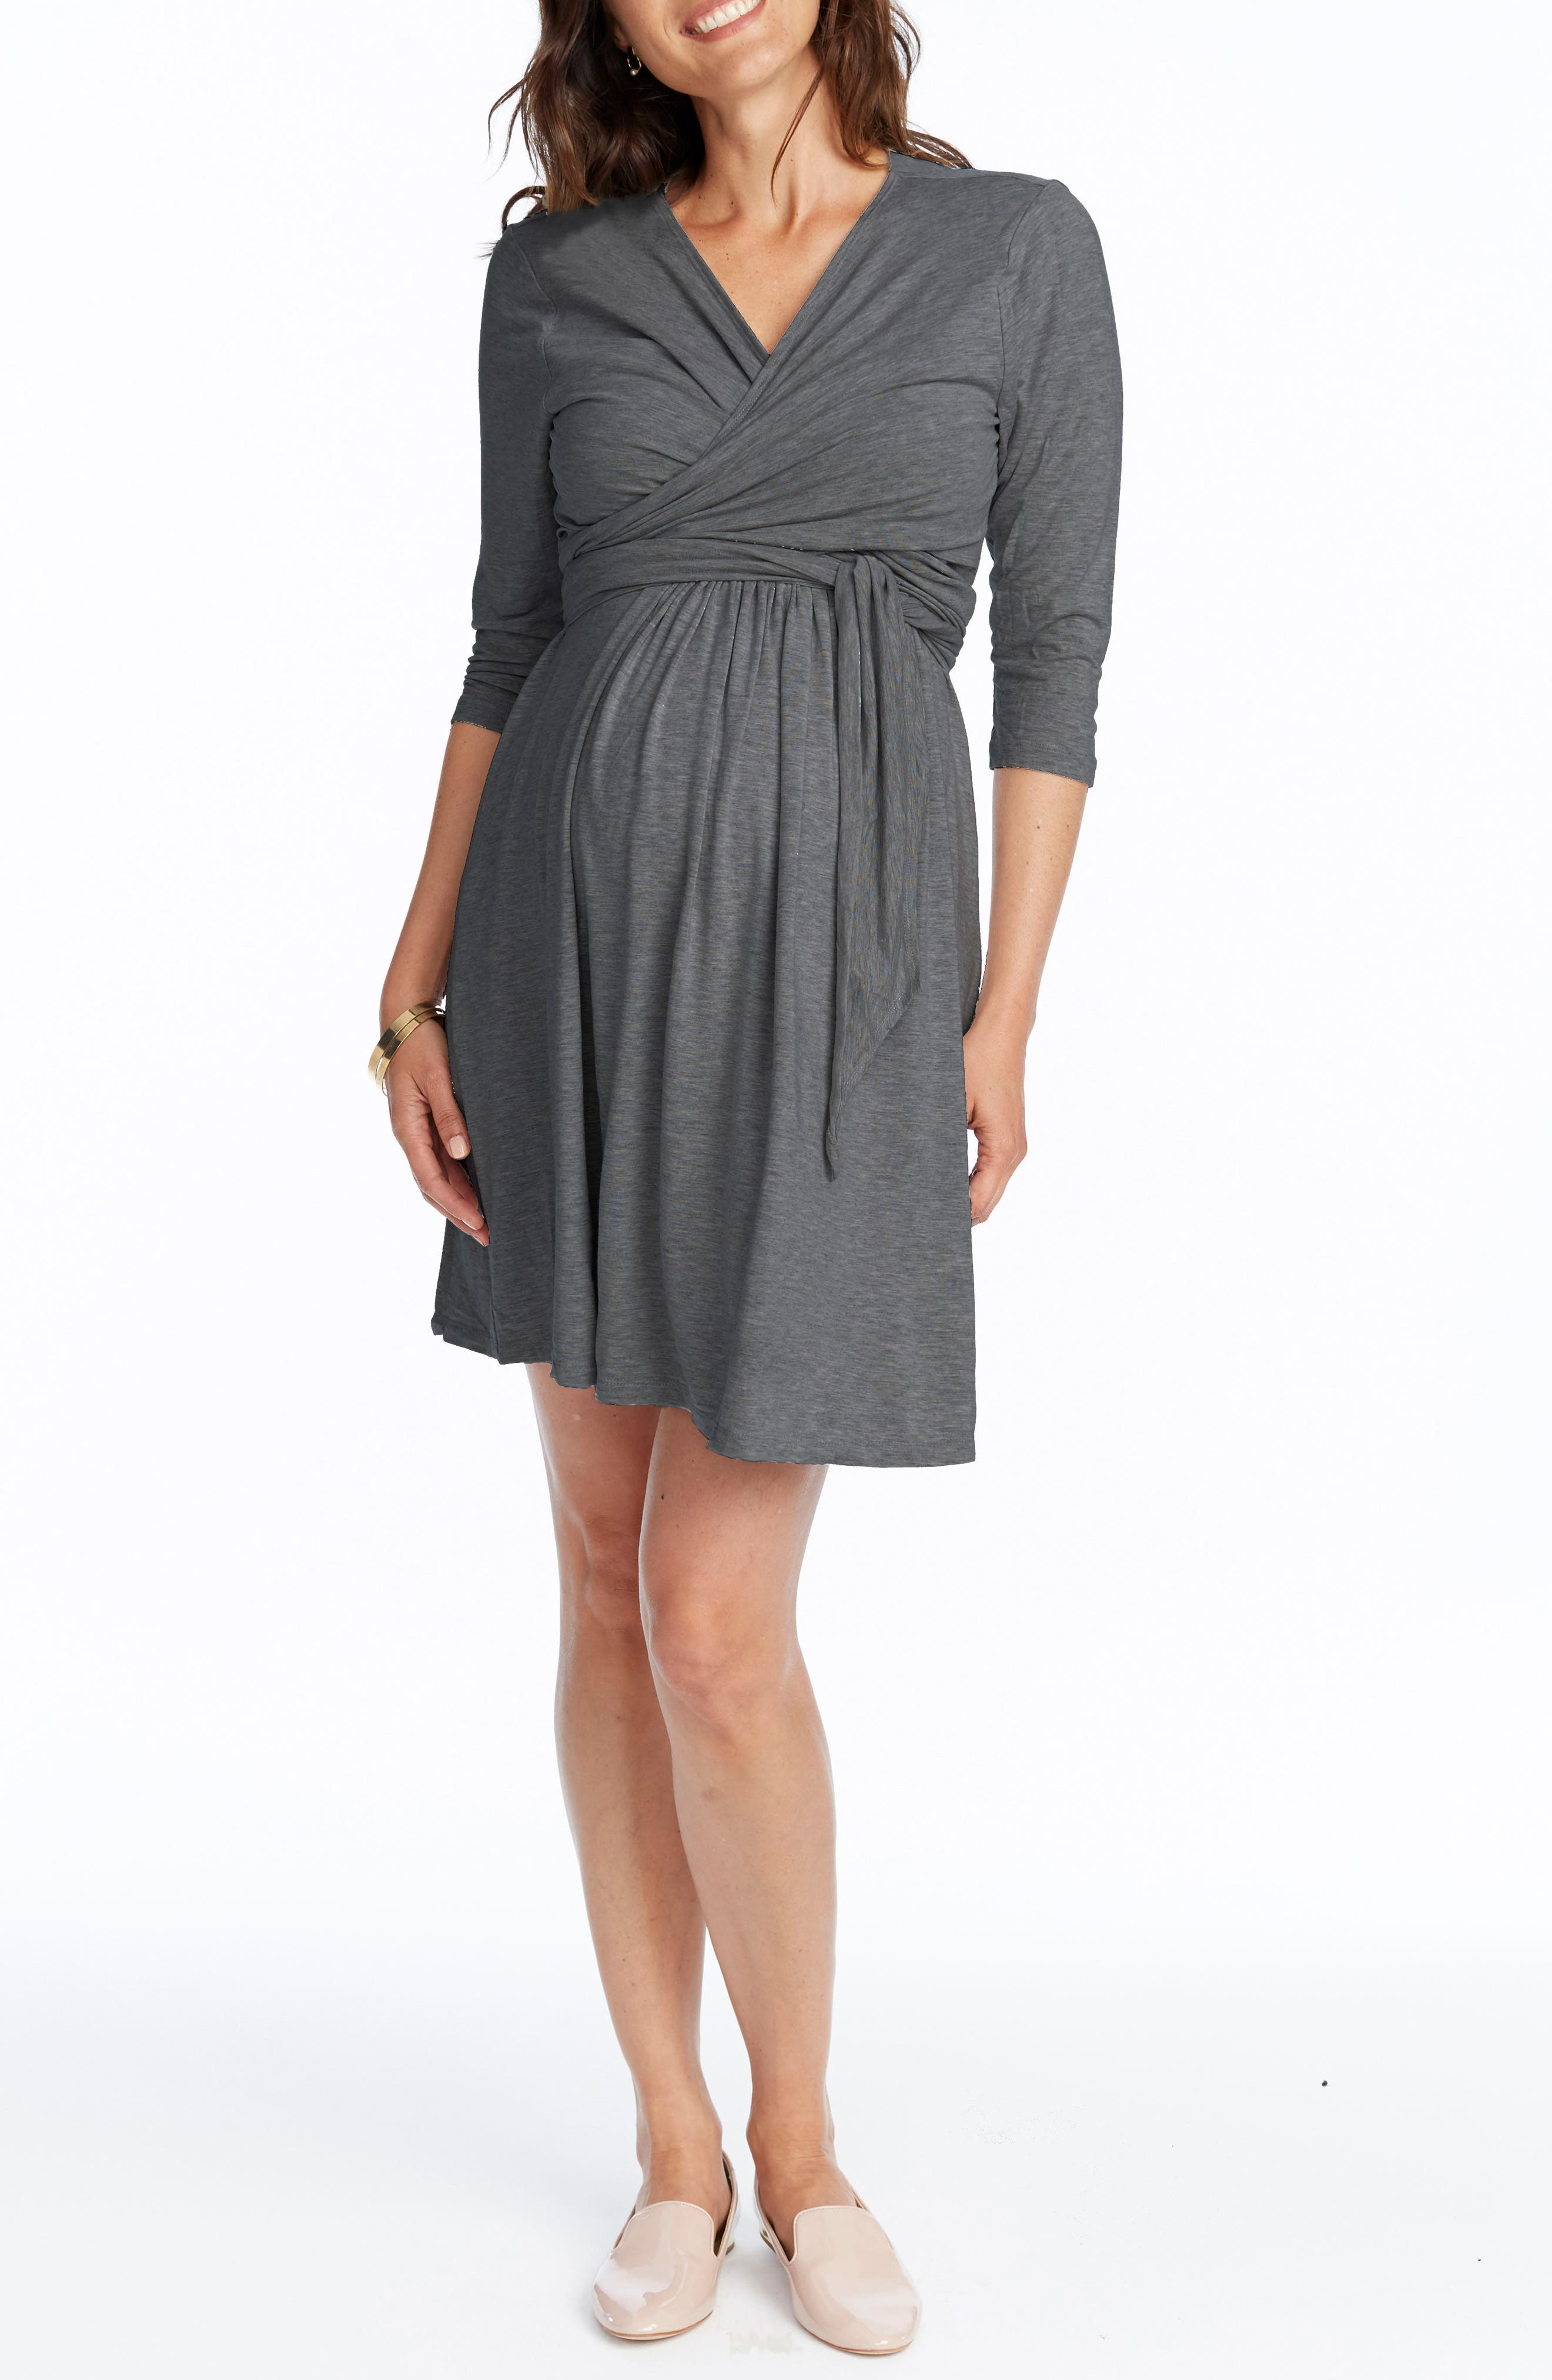 Rosie Pope Maternity/Nursing Wrap Dress